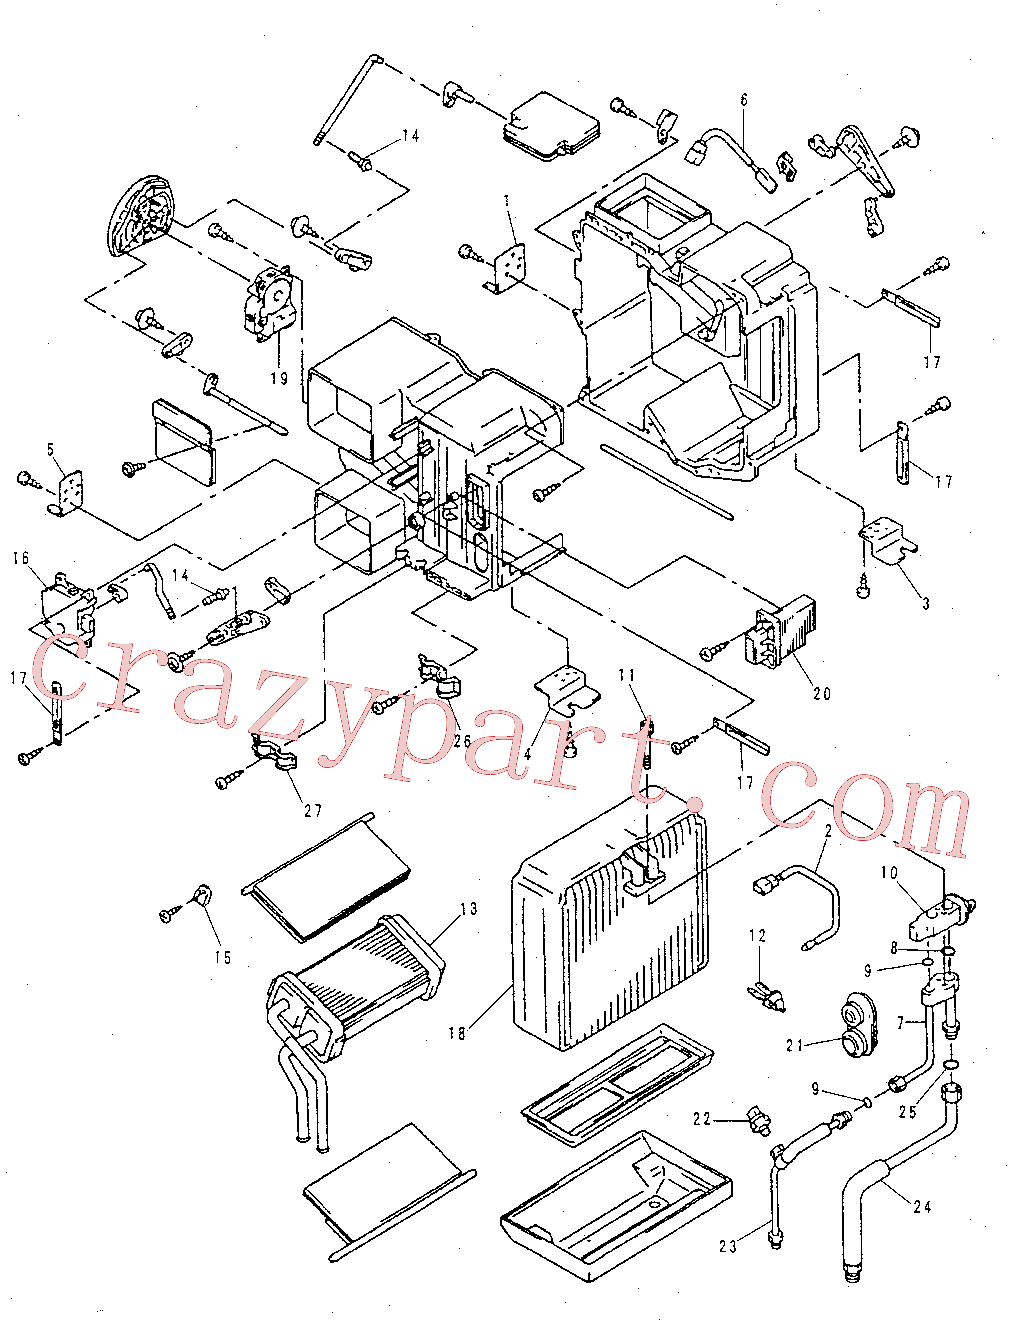 CAT 8T-9534 for TH35-C11I Petroleum Package(PETR) operator station 147-4811 Assembly